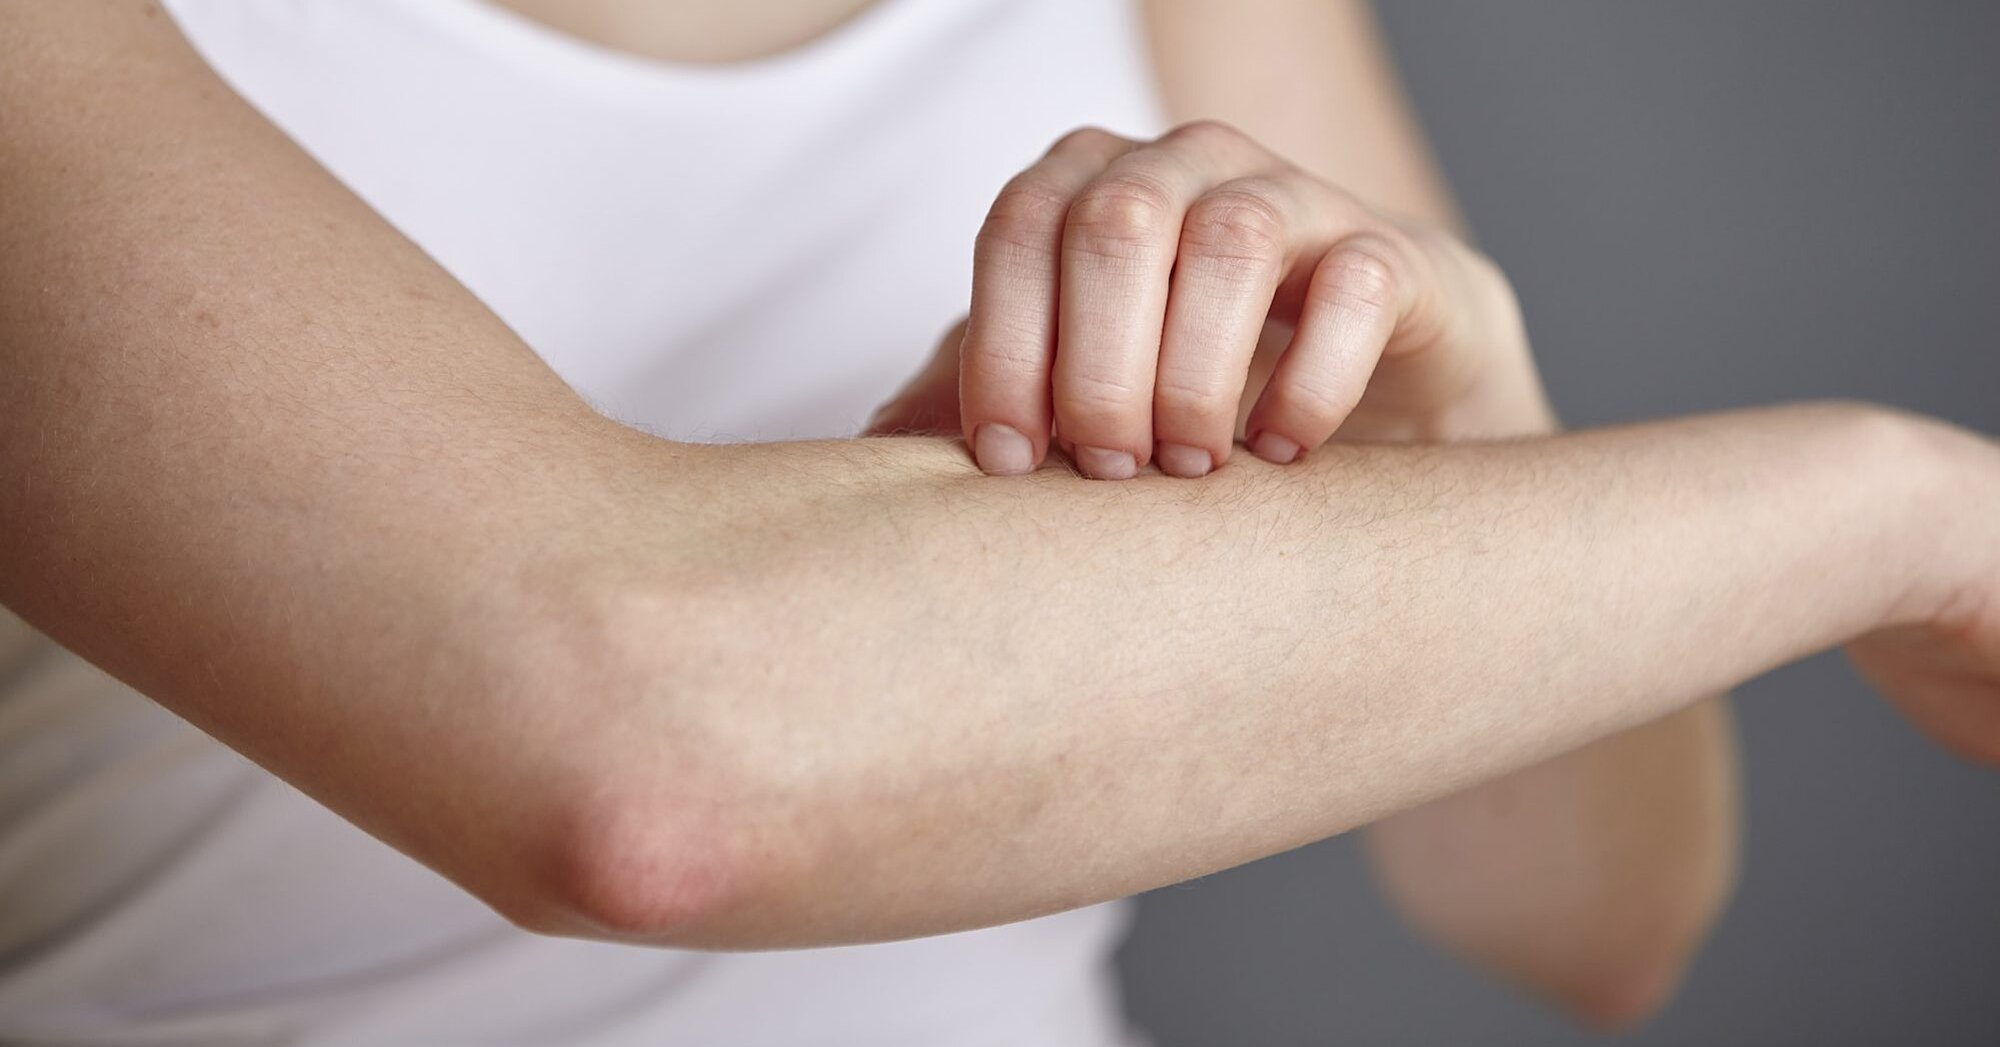 Itchy Skin? Watch Out for These 7 Surprising Culprits That Make Eczema Worse